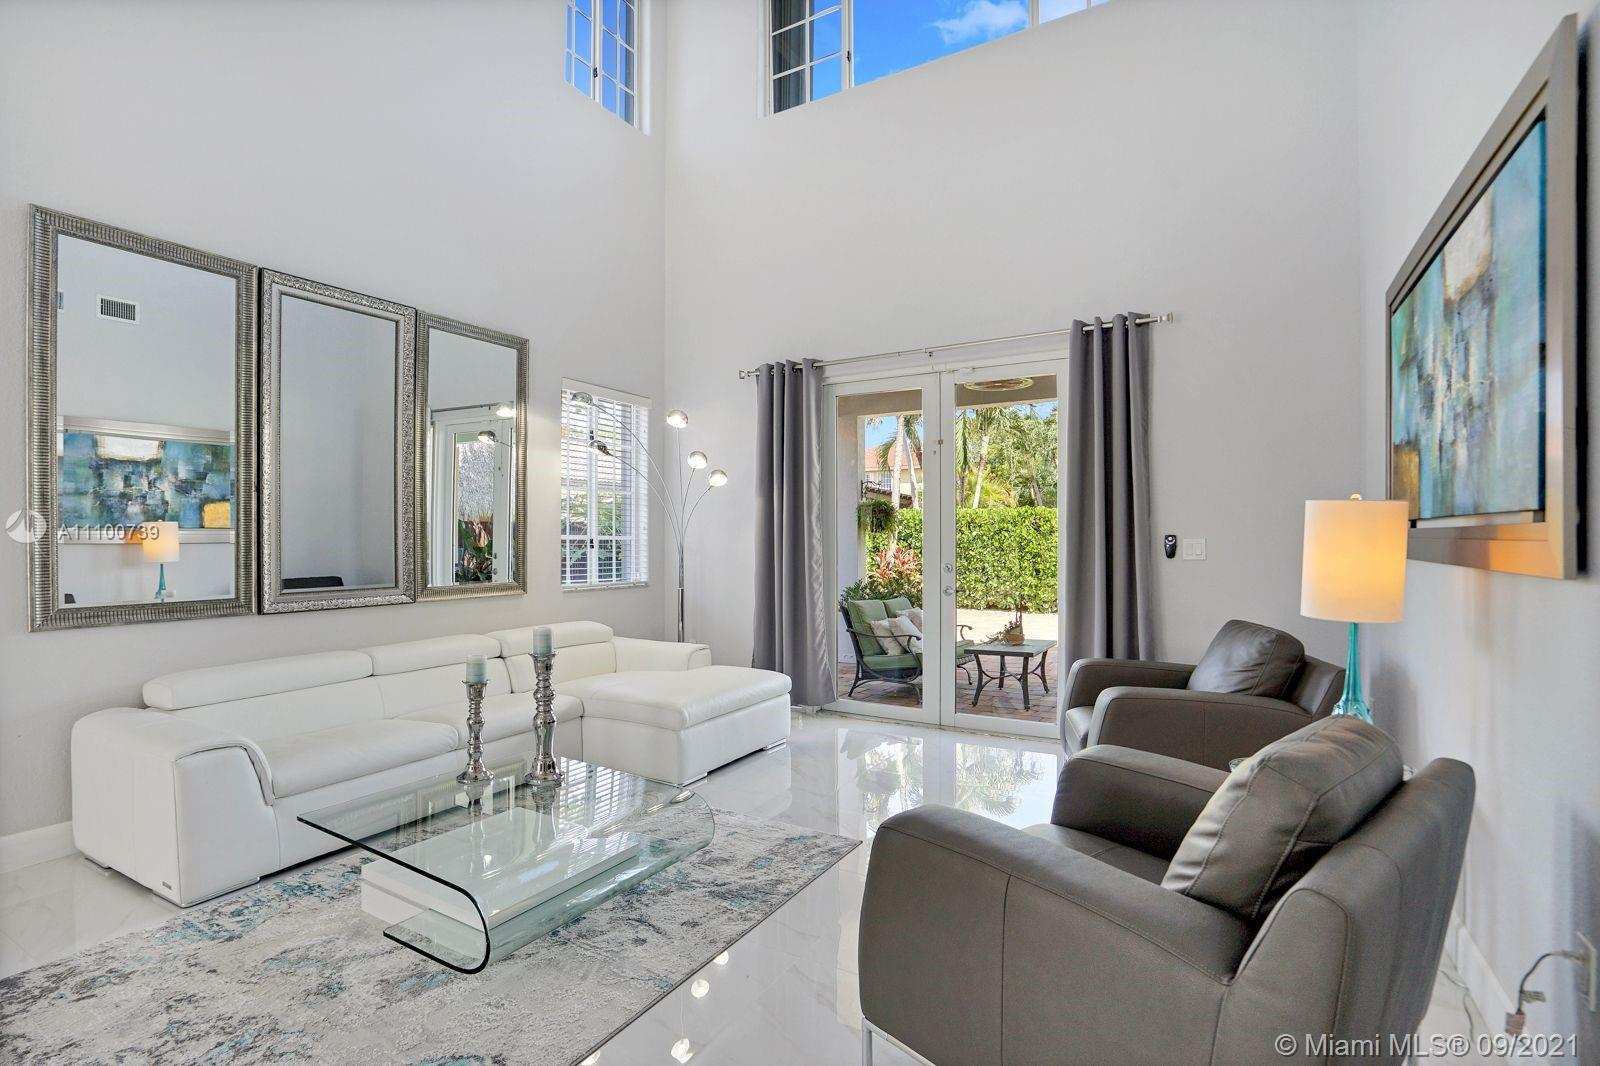 Single Family Home,For Sale,7833 NW 168th Ter, Miami Lakes, Florida 33016,Brickell,realty,broker,condos near me